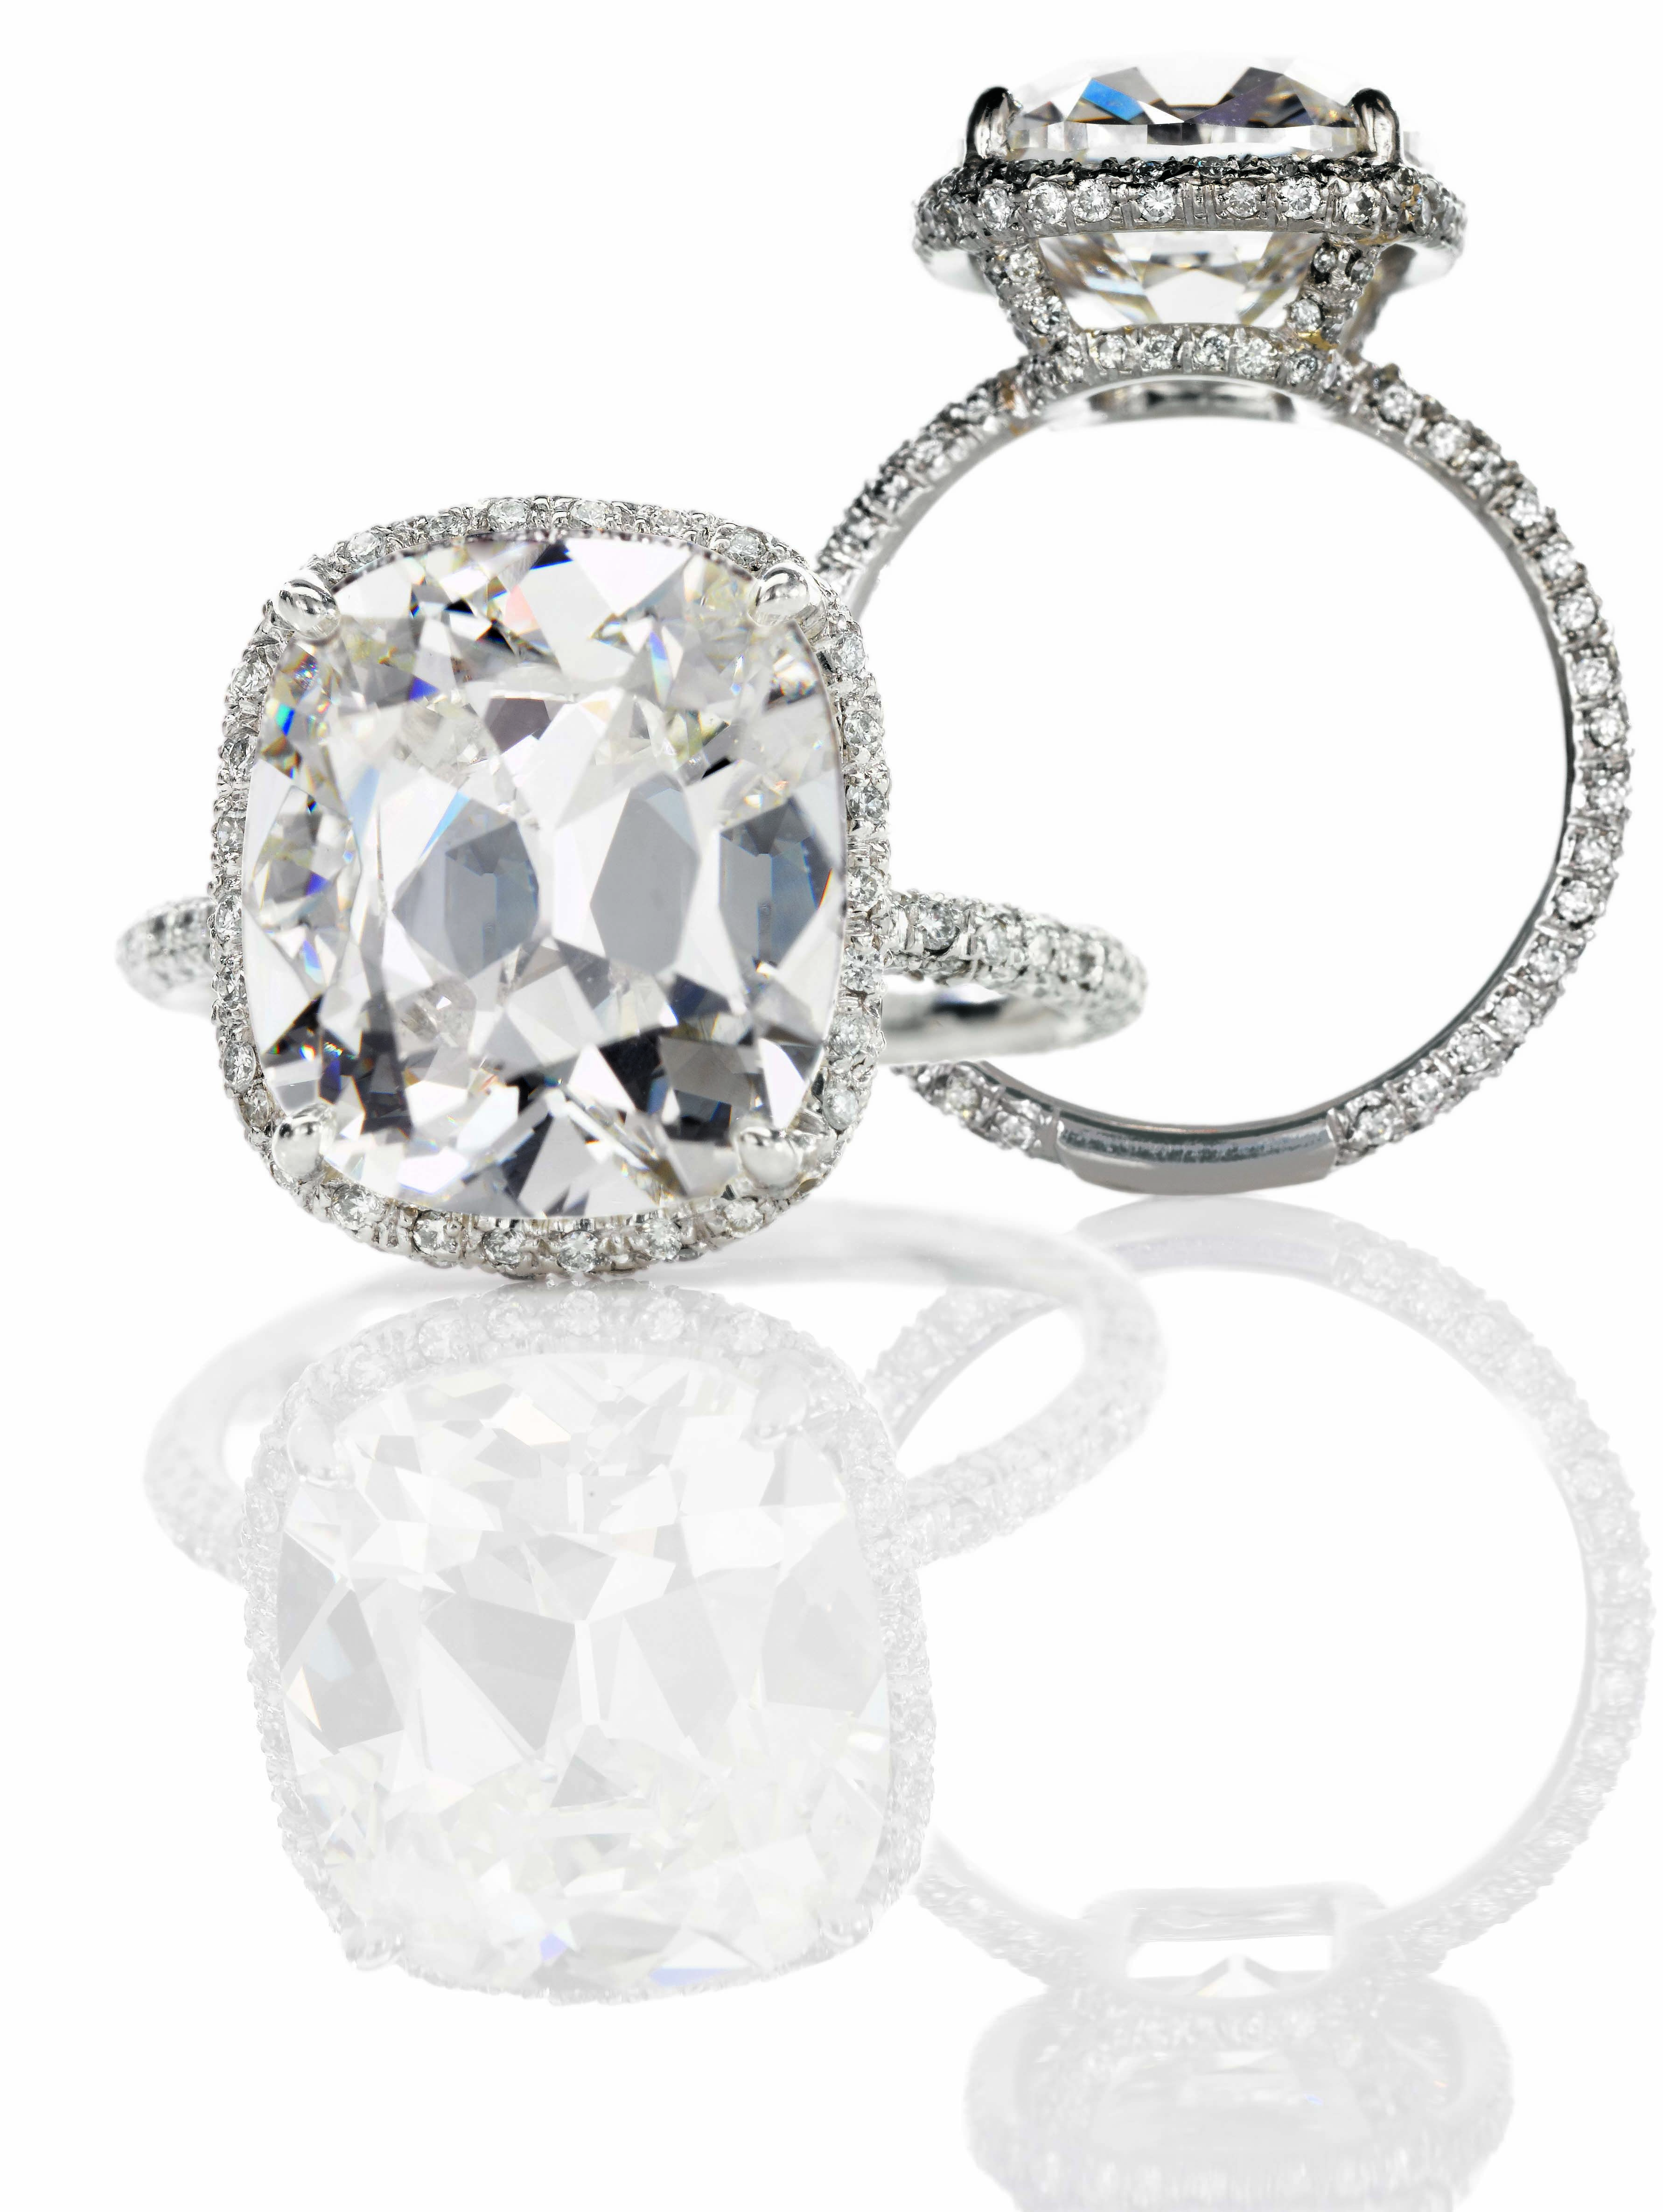 LOVE everything about this Cushion cut center stone rounded